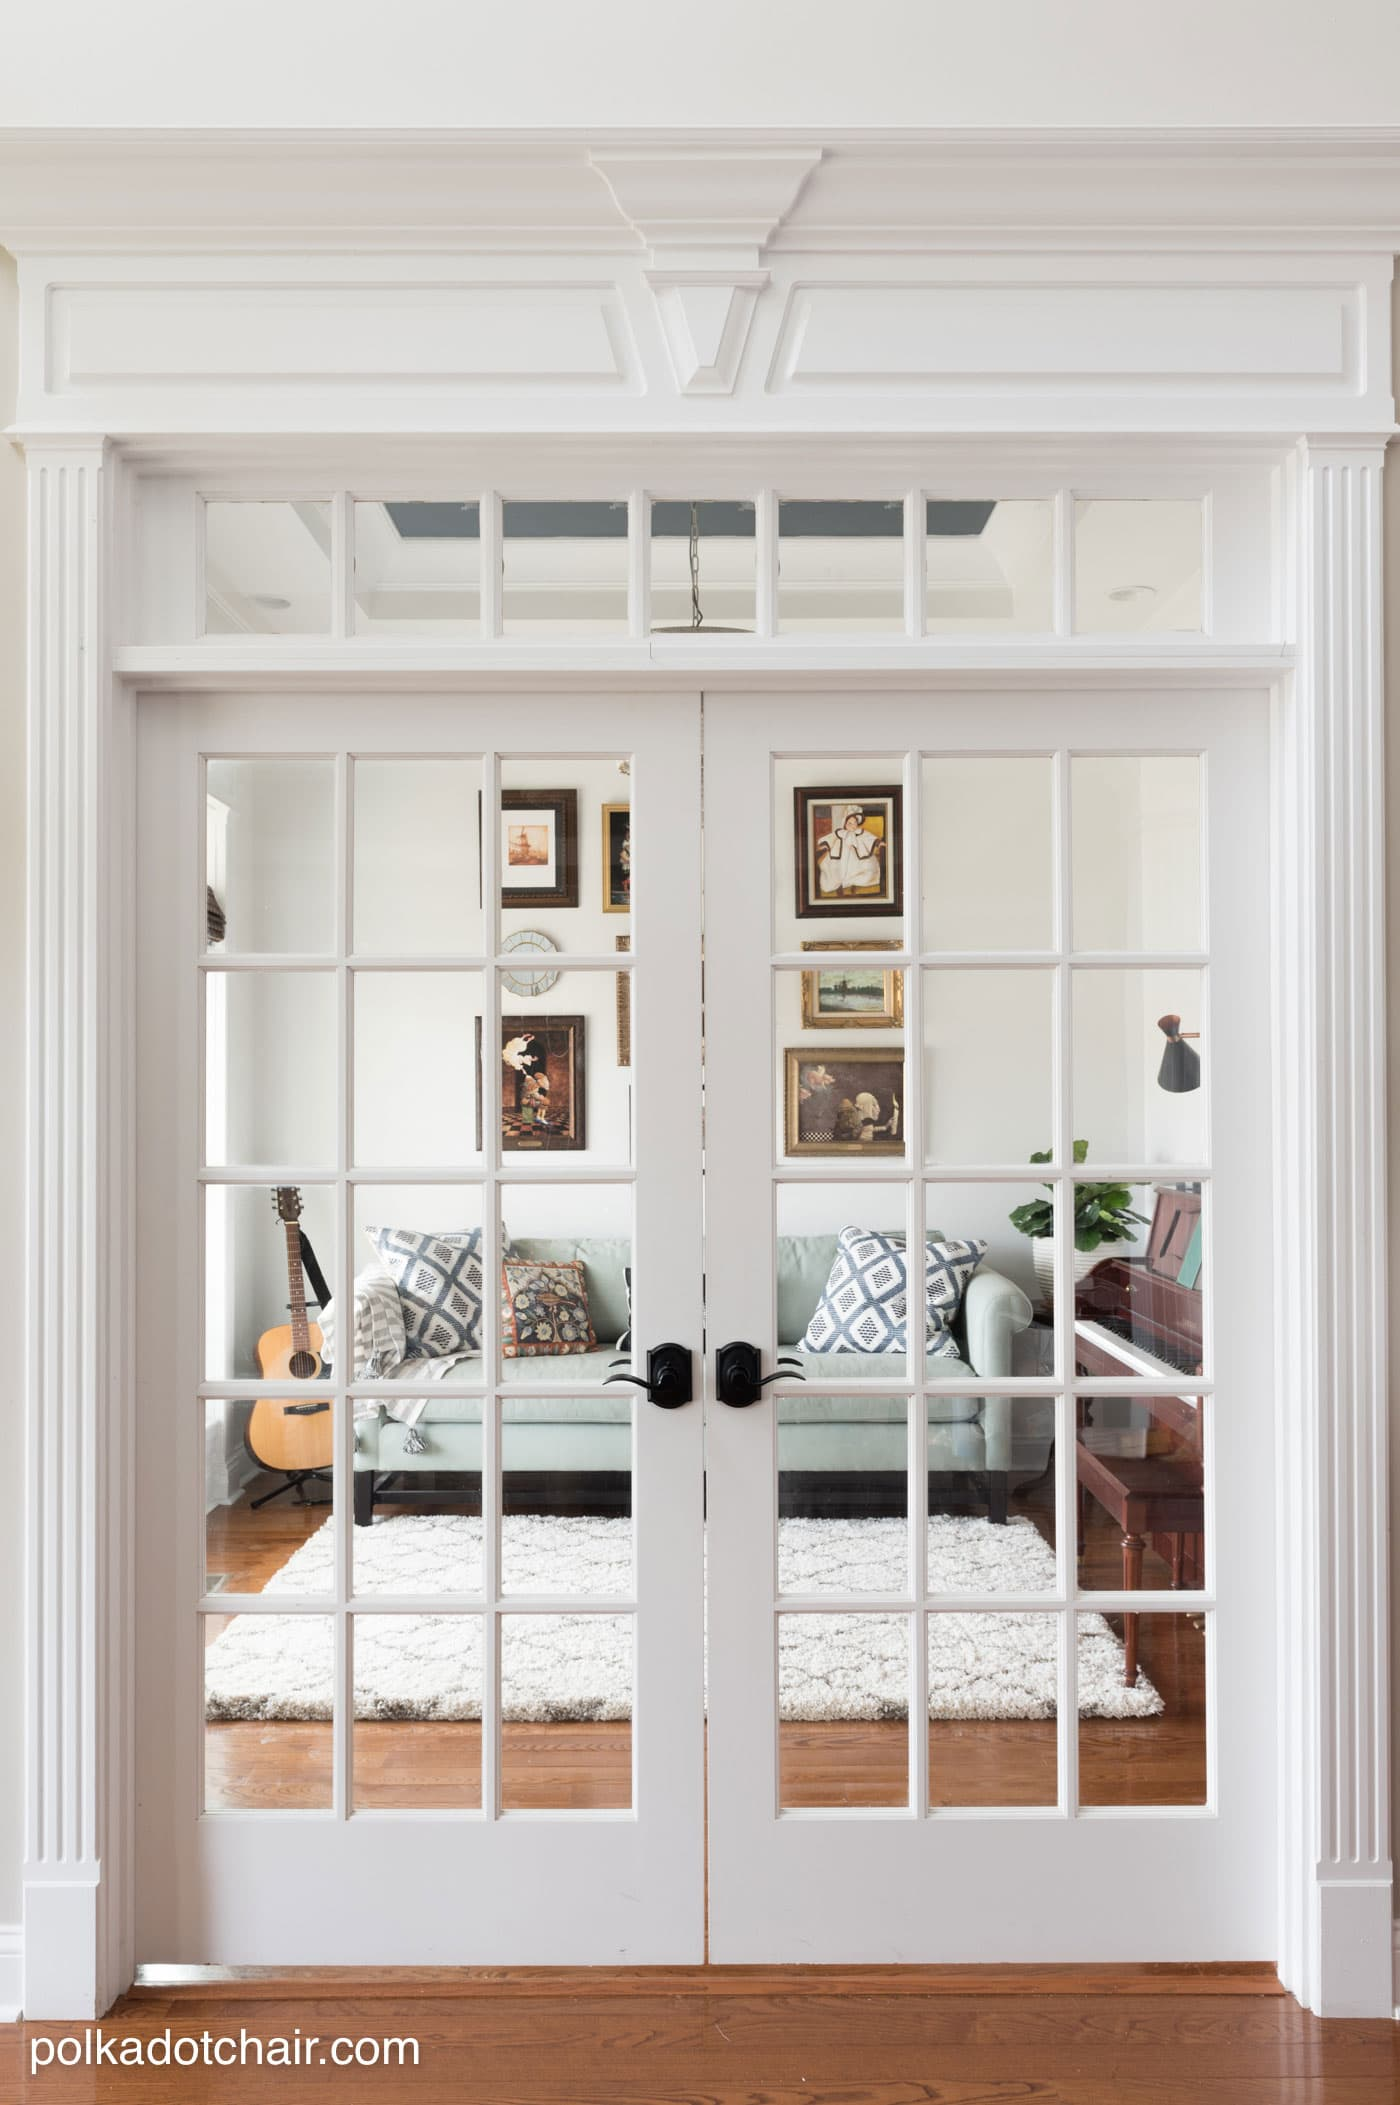 Learn how to easily change your door hardware and get lots of ideas for redecorating your home office or music room. Ideas for creating a gallery wall, a painted ceiling and lots of before and after photos!